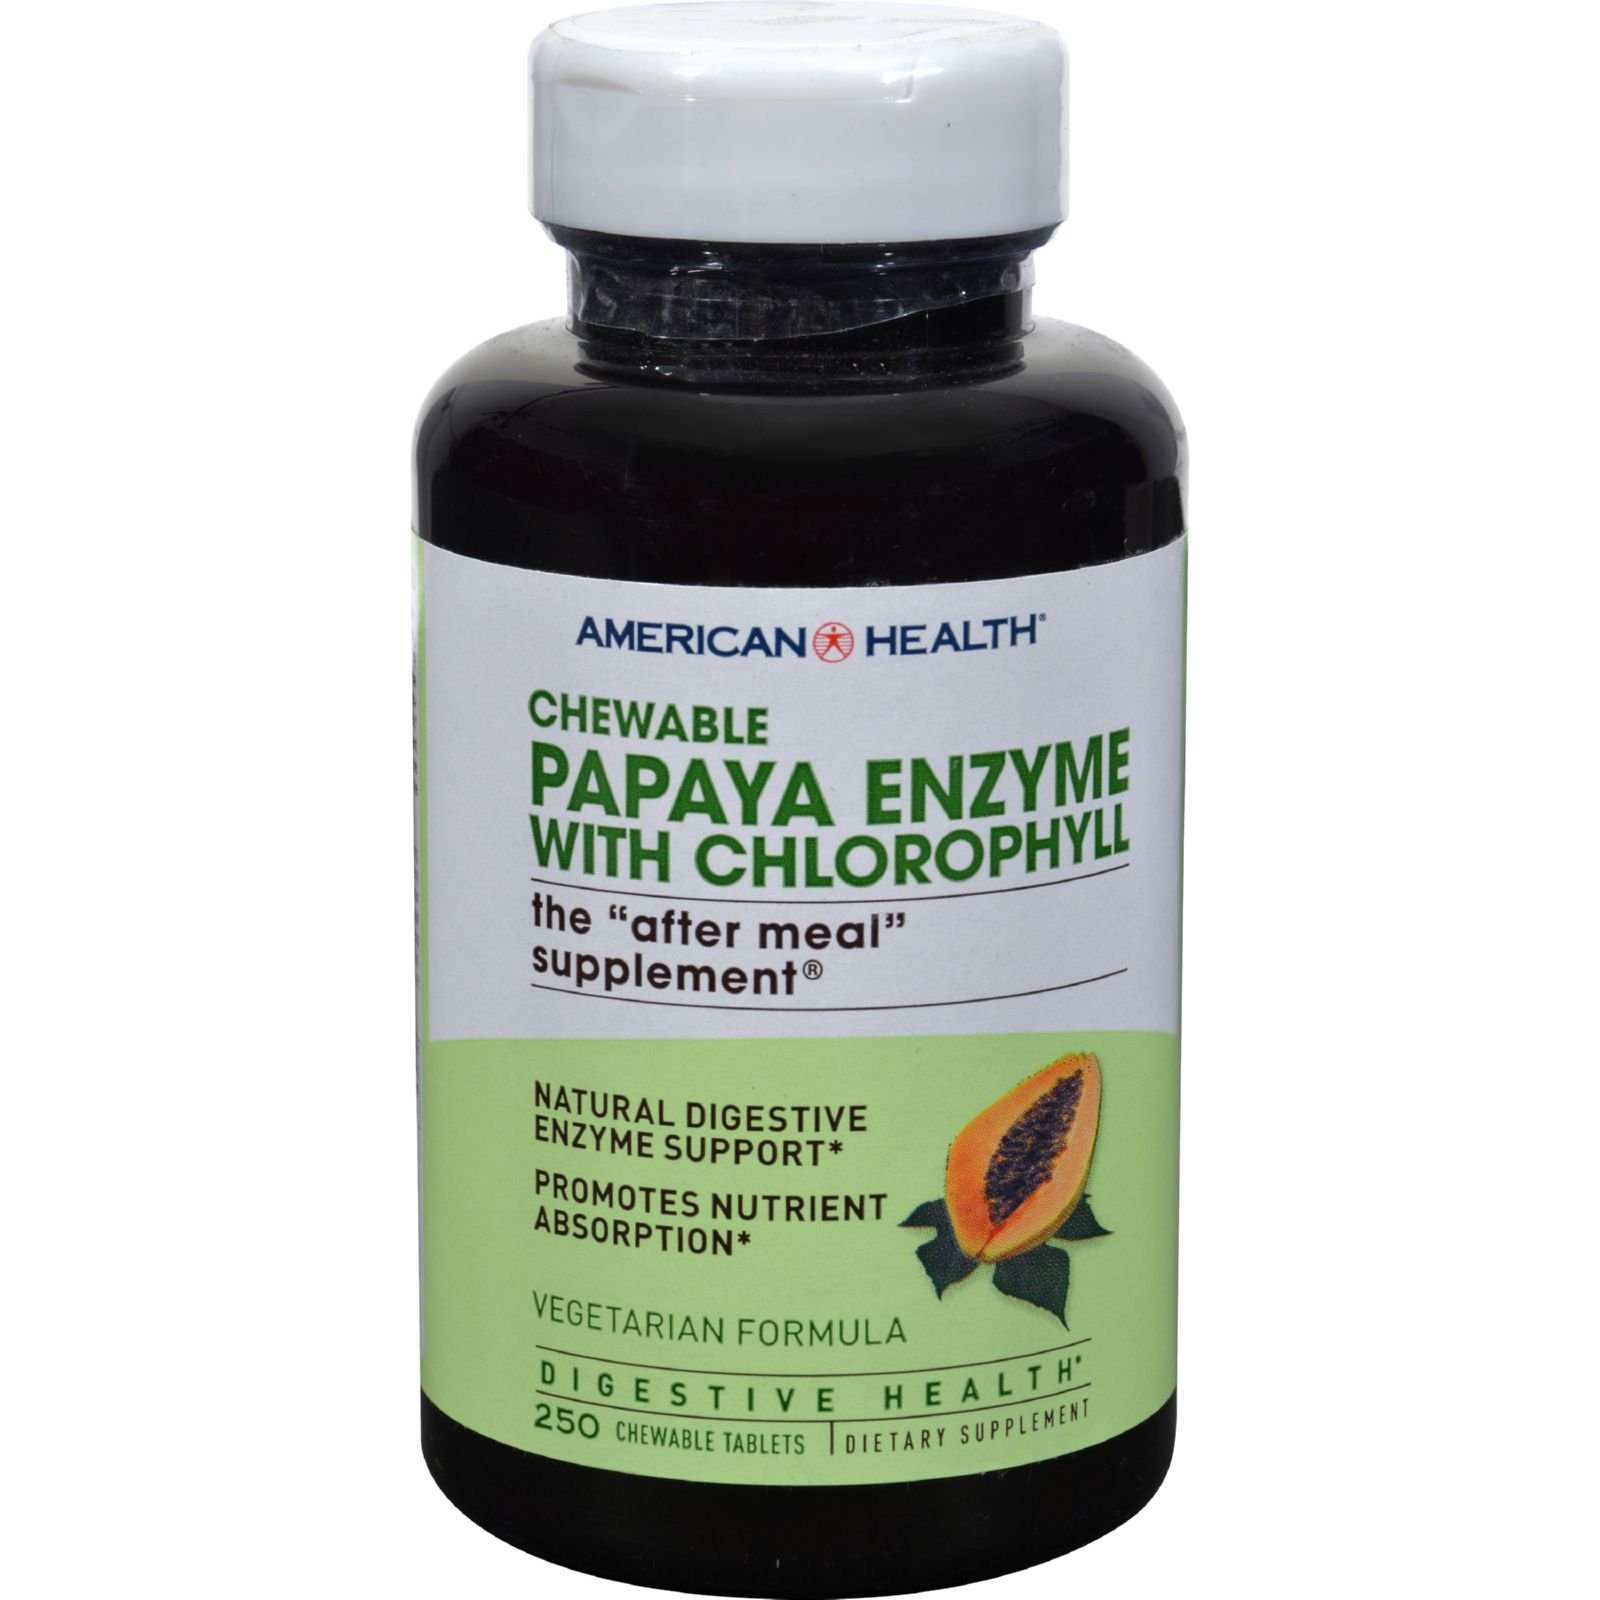 American Health Papaya Enzyme with Chlorophyll Chewable - After Meal Supplement - 250 Vegetarian Tablets (Pack of 2) by American Health